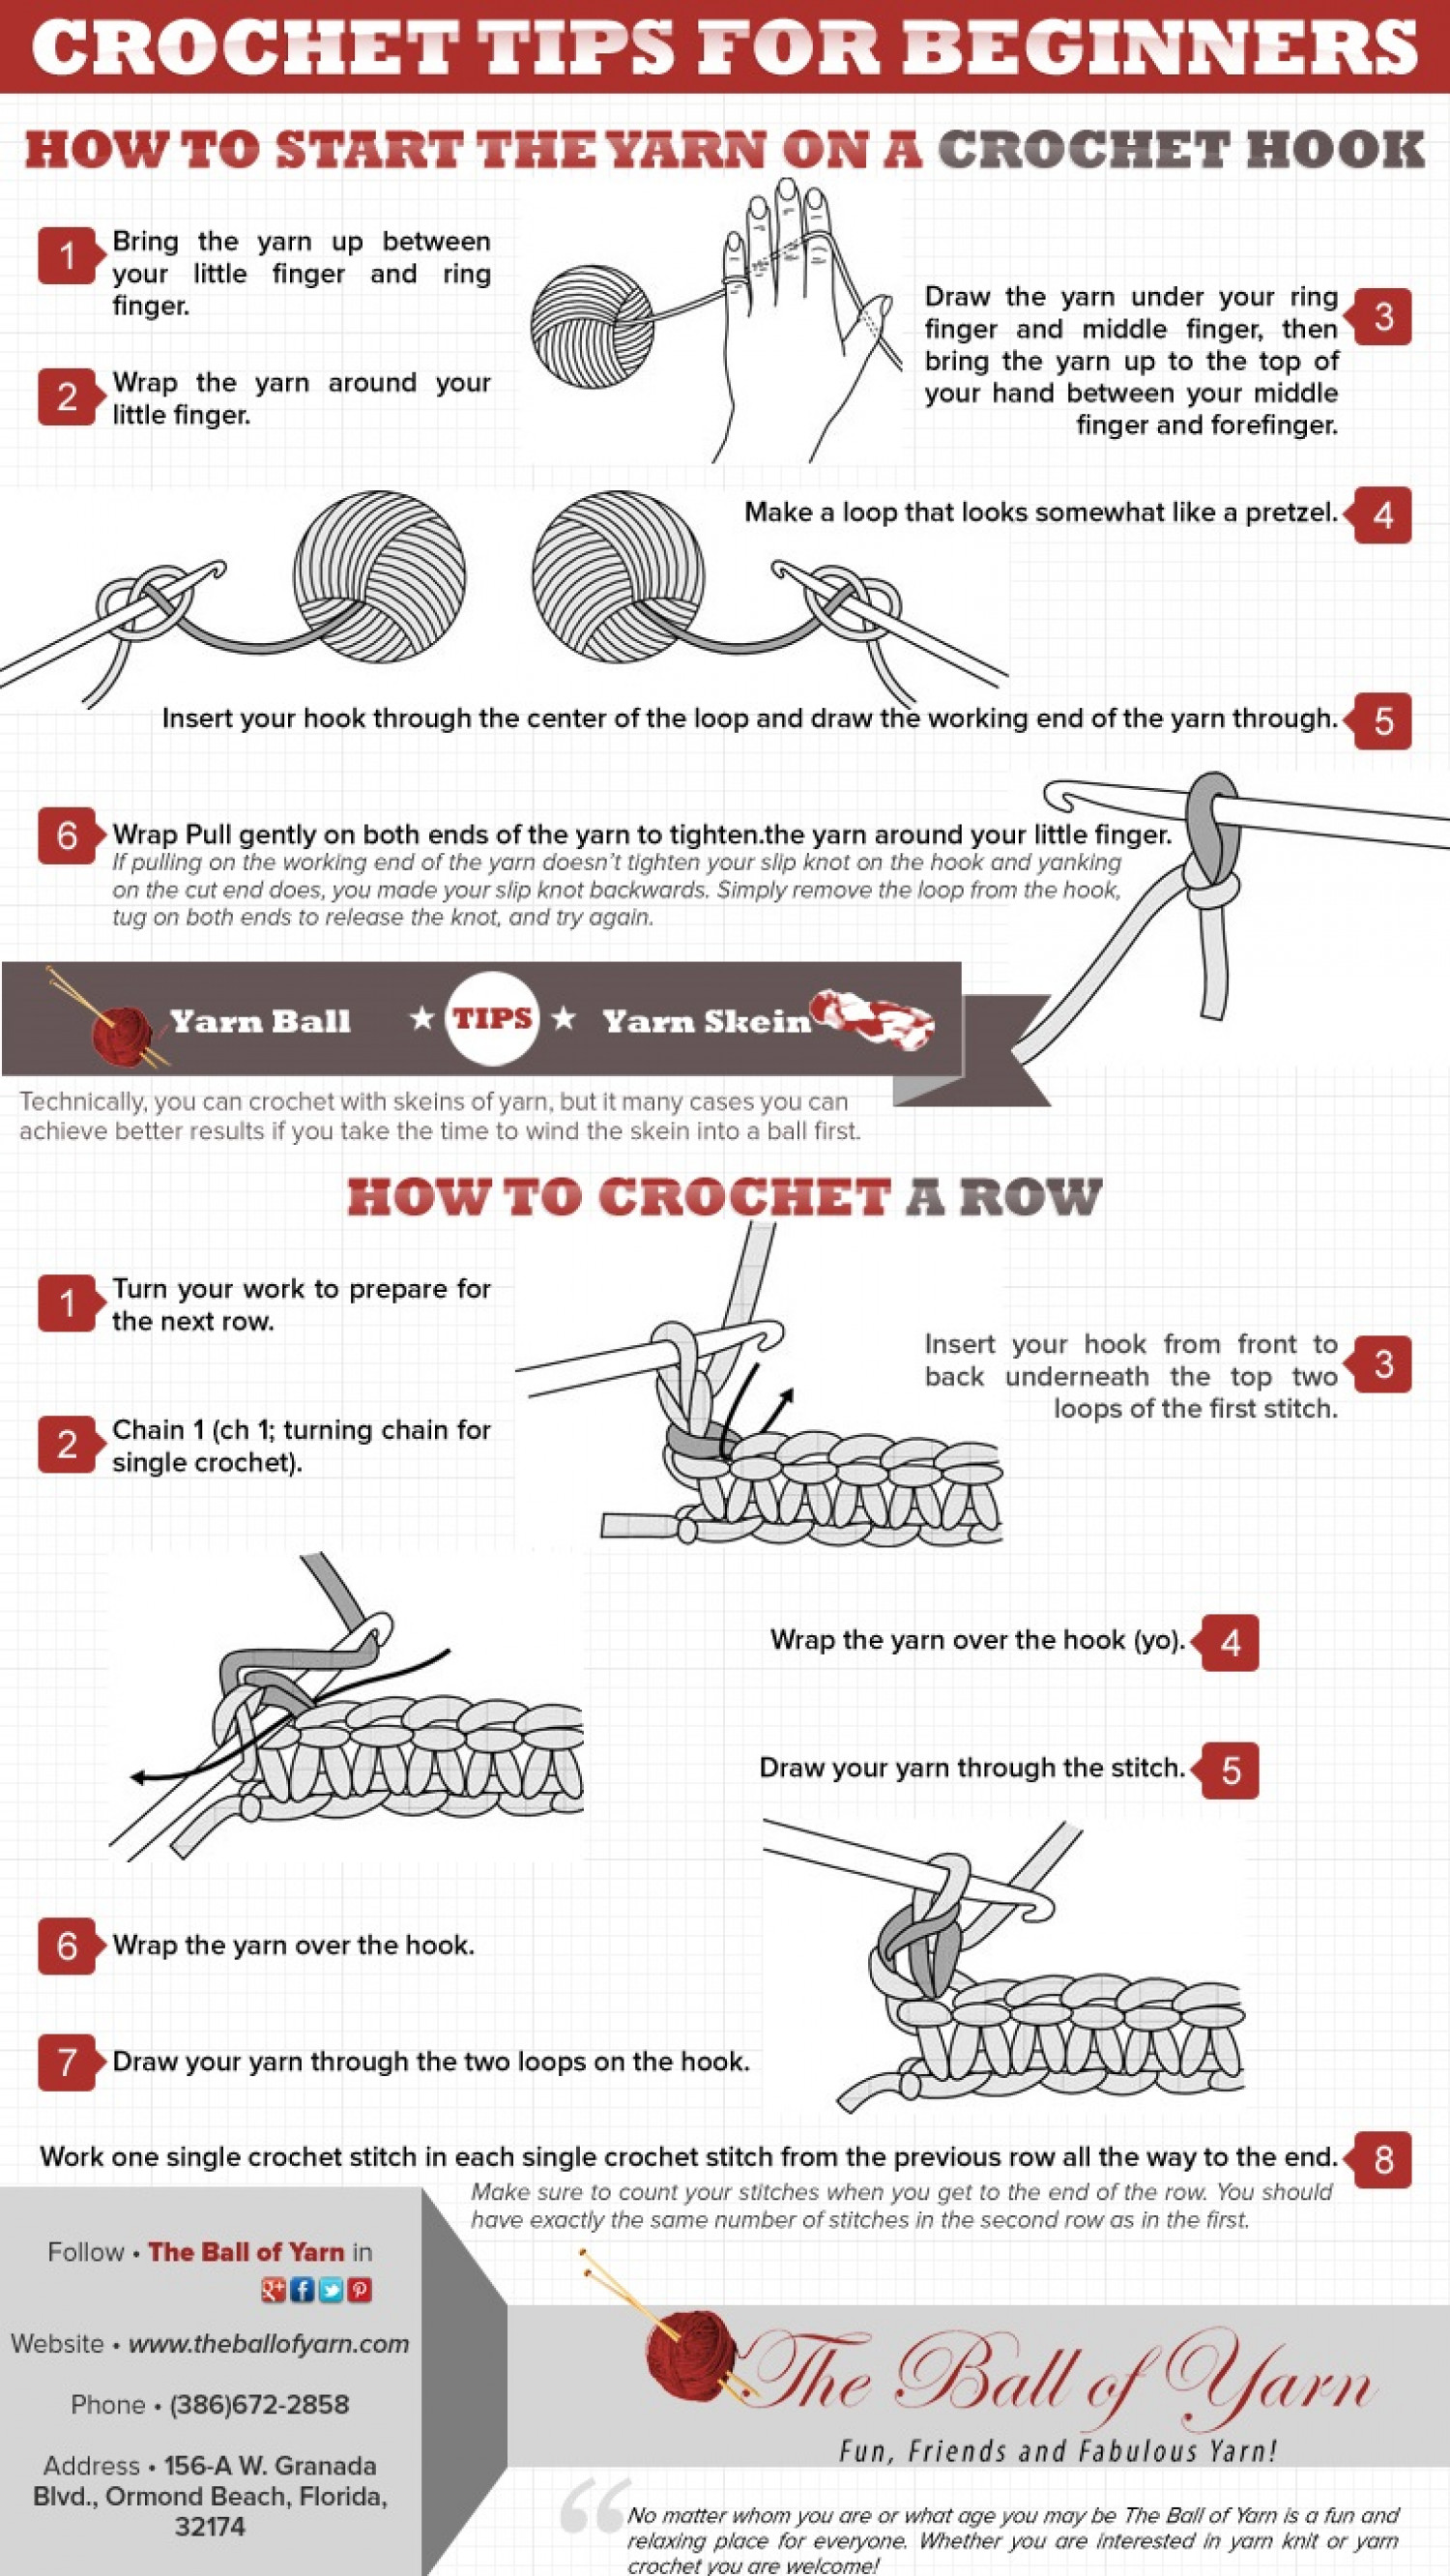 How To Crochet For Beginners : Crochet Tips for Beginners Infographic